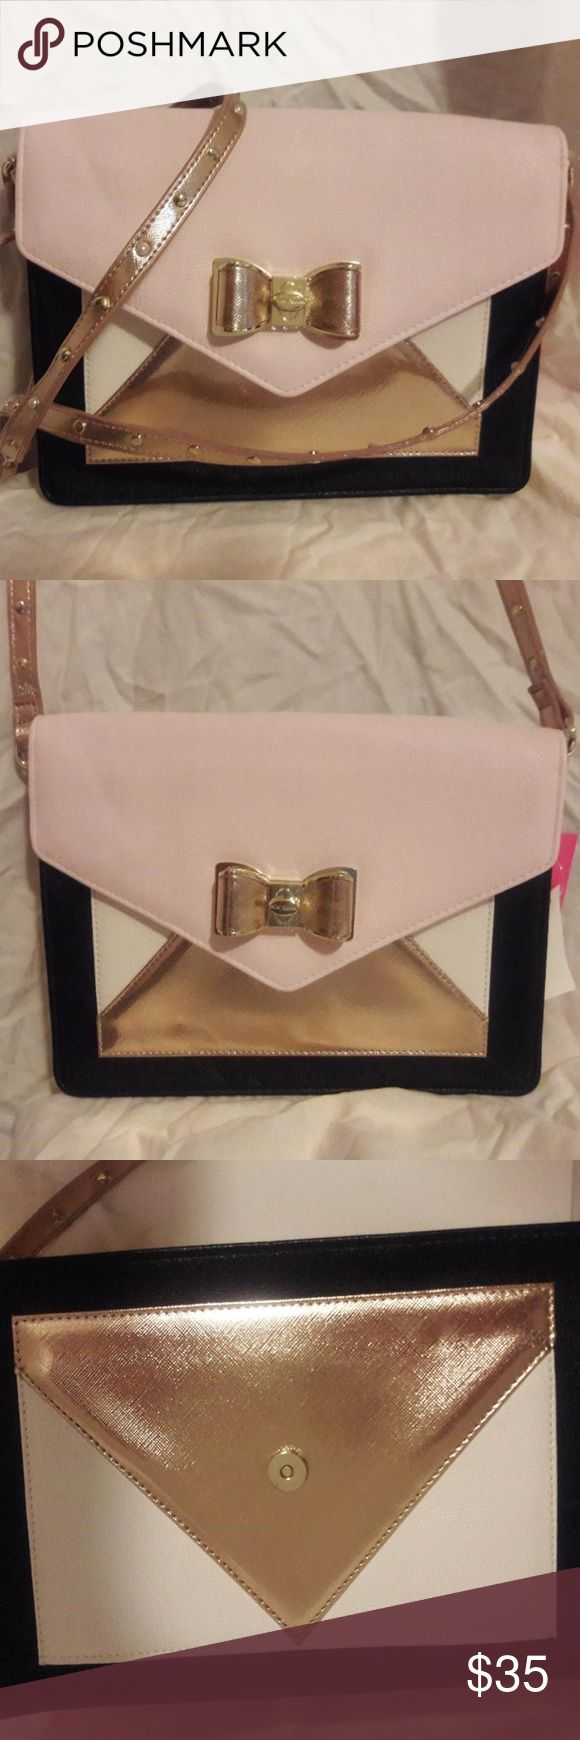 Betsey Johnson Pink Pleather Envelope CrossBody Betsey Johnson NEW Pink Pleather Envelope Colorblock Cross Body Purse $68  Color: Black, Pink & Gold Material: Jute Style: Messenger & Cross Body Hardware: Brass Shoulder Strap: Yes Included Original Tags: Yes - tags attached Closure: Magnetic Snap Bag Height: 7 Inches Bag Length: 9.5 Bag Depth: 1 Strap Drop: 23 Betsey Johnson Bags Crossbody Bags